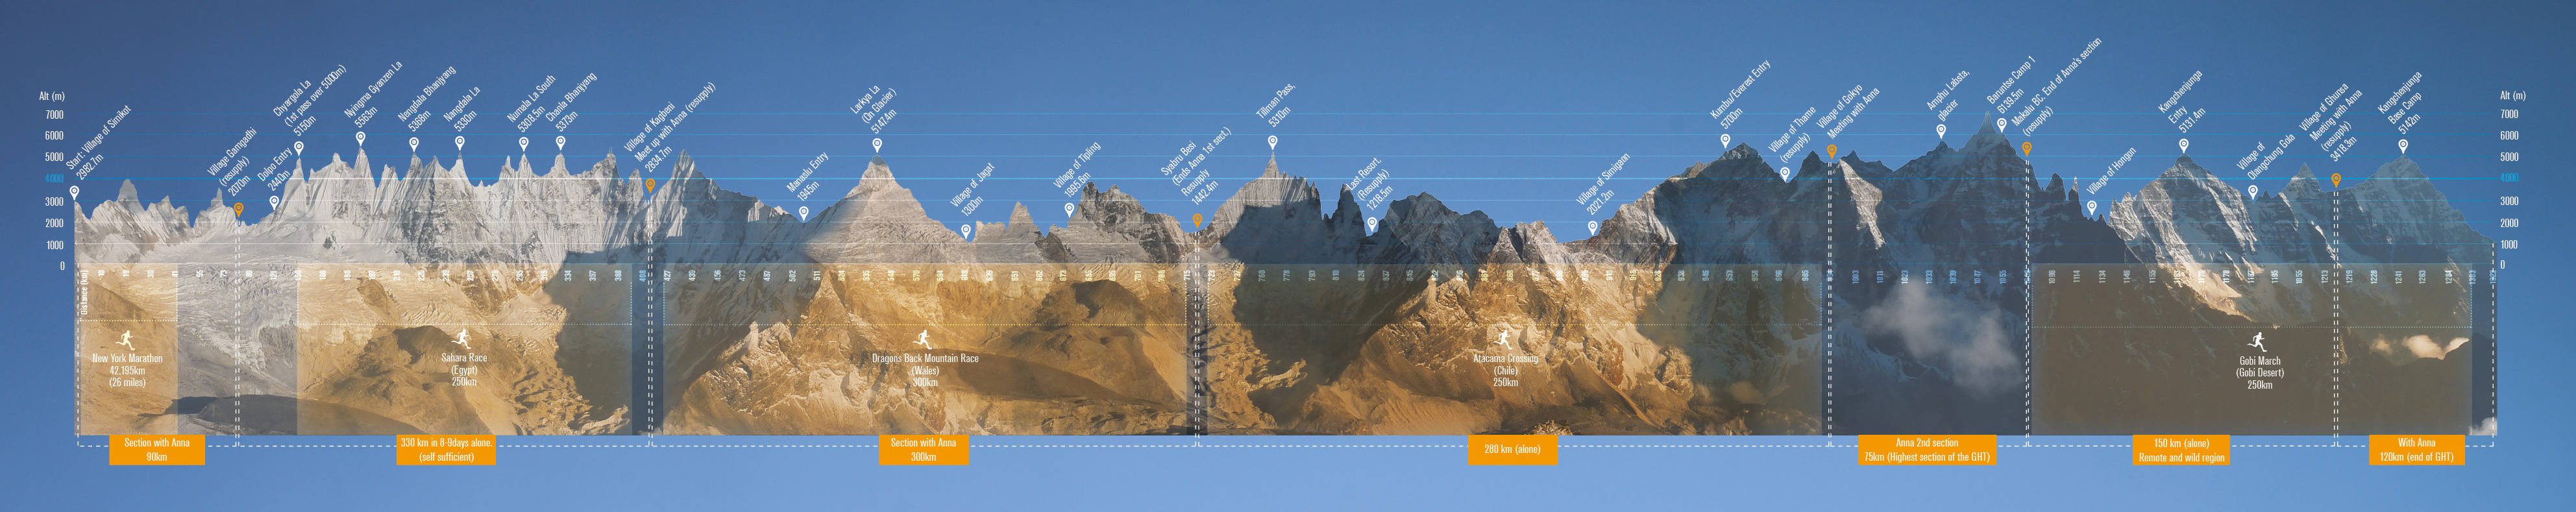 Great Himalayan Trail Map - GHT - iancorless.com